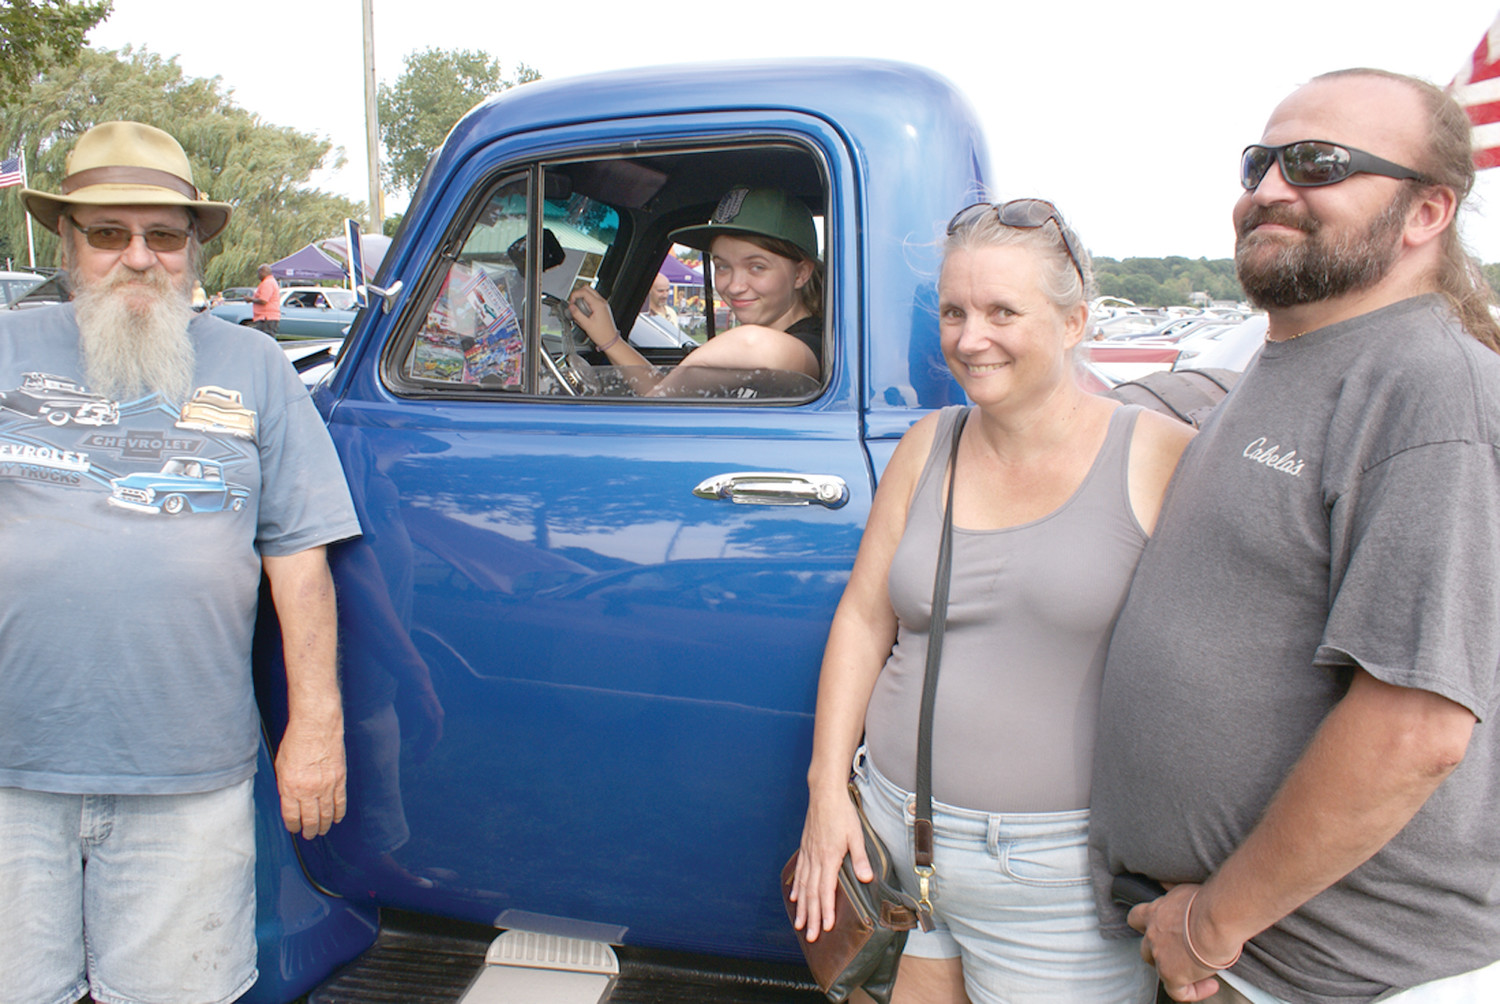 A CLASSIC: Owning the 1954 Chevy Thriftmaster (Limited Edition) is George Pennington, who is pictured with guests from Western MA with Kayleigh Aucoin and her mother Sibyl Johnson and George Hardy.